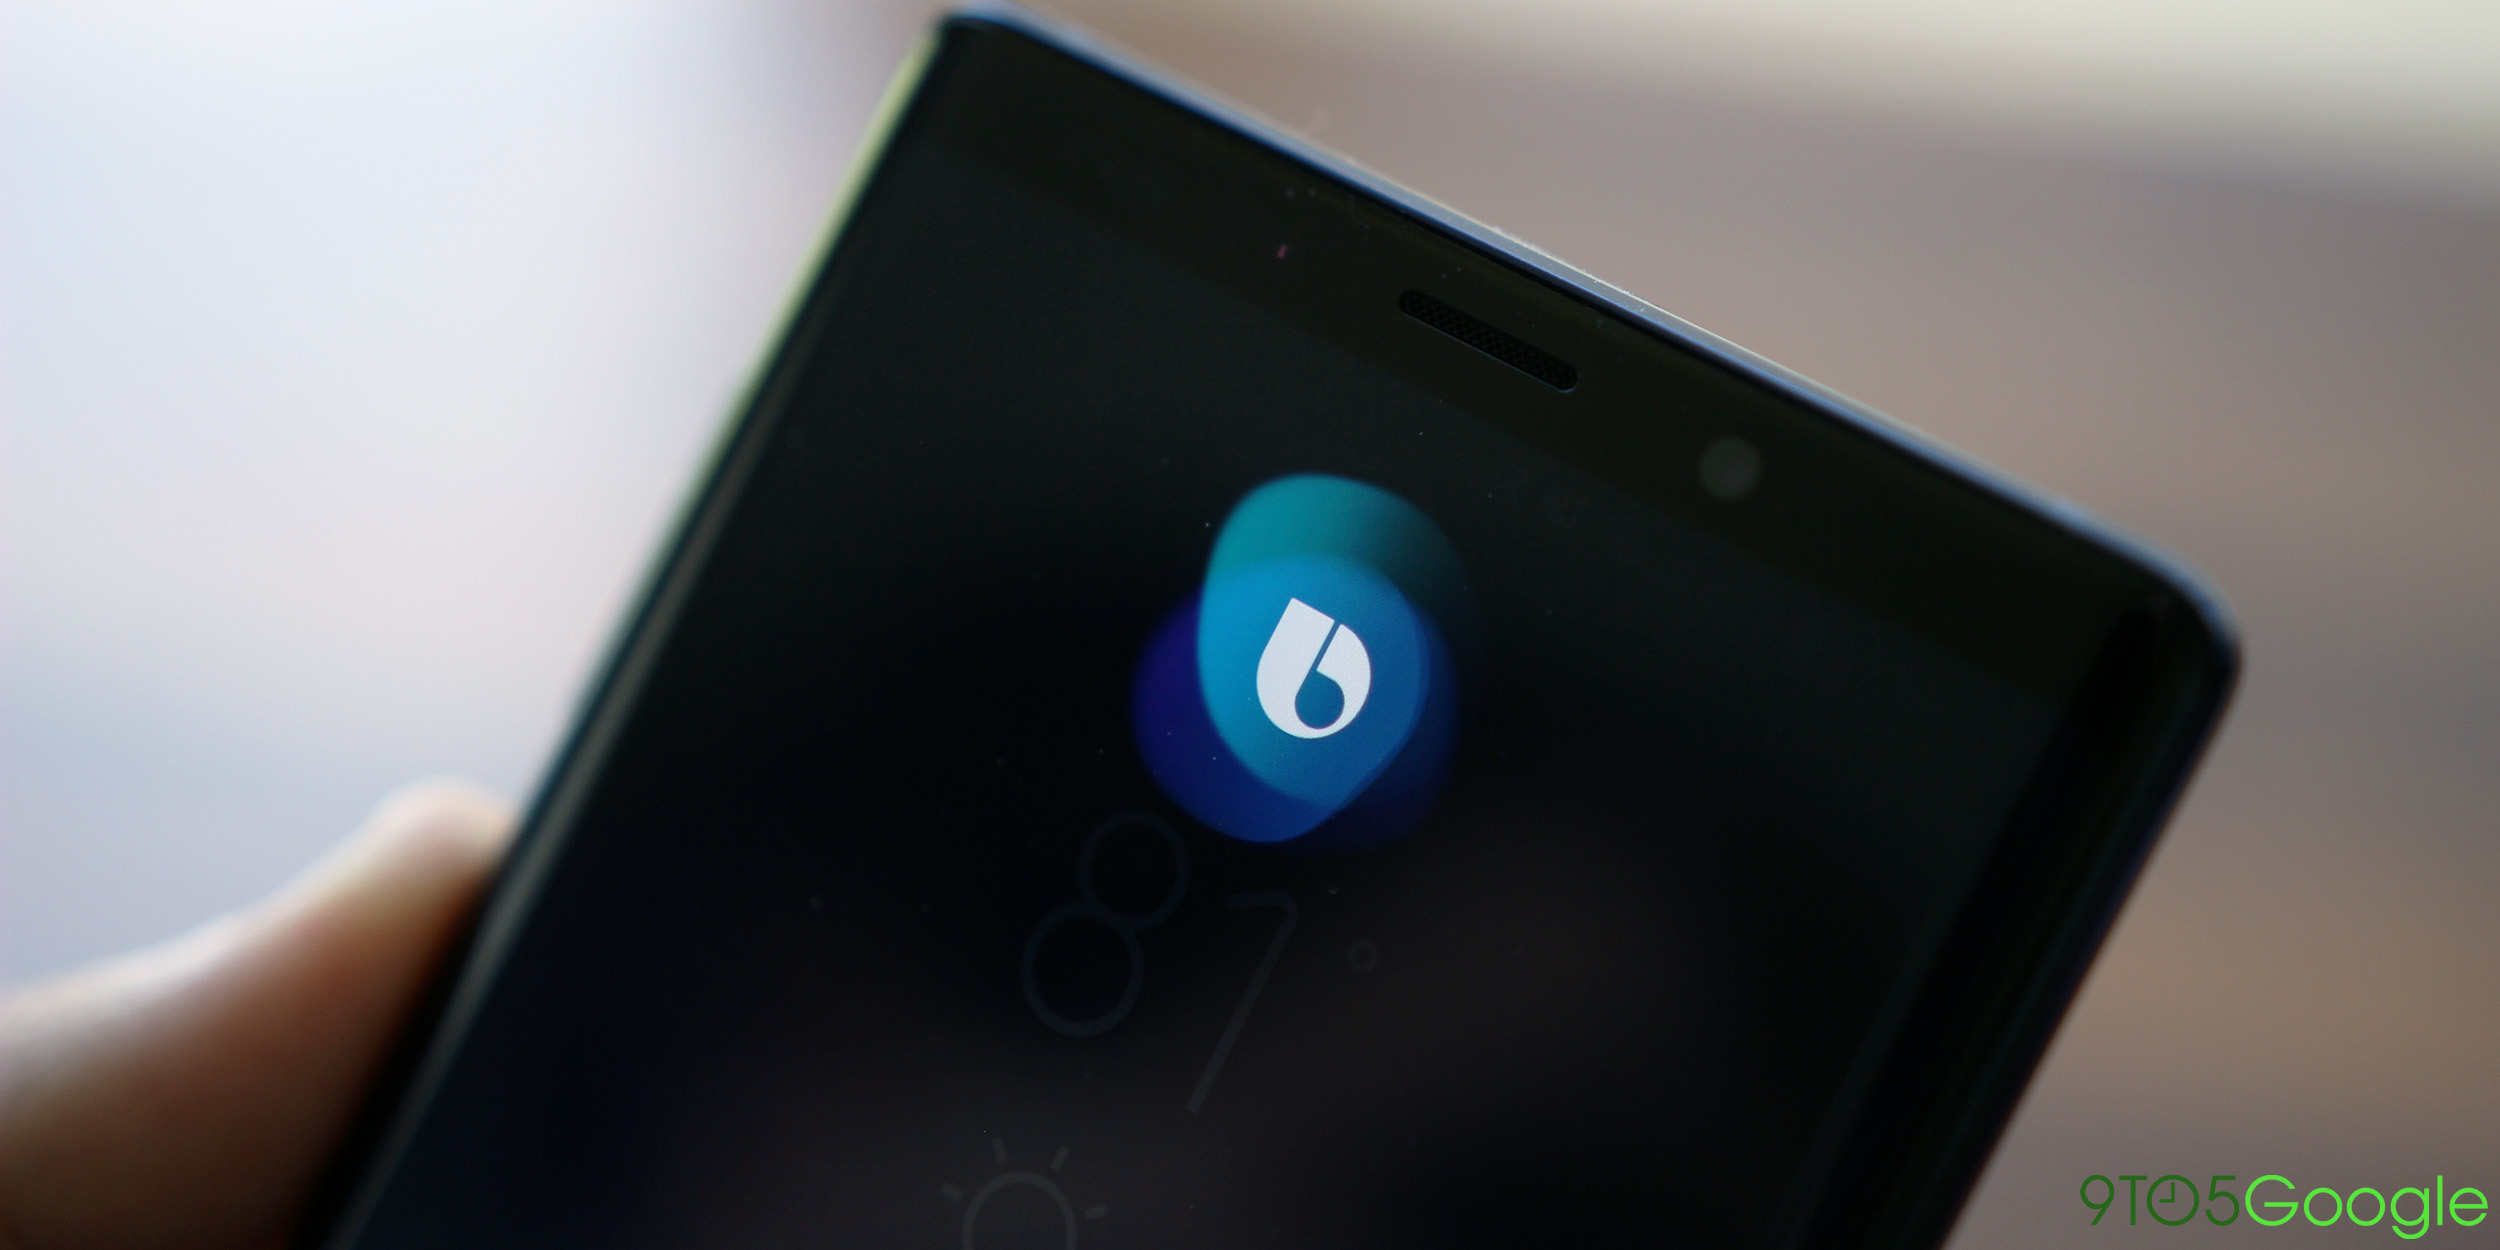 You can't disable the Samsung Galaxy Note 9's Bixby button, but